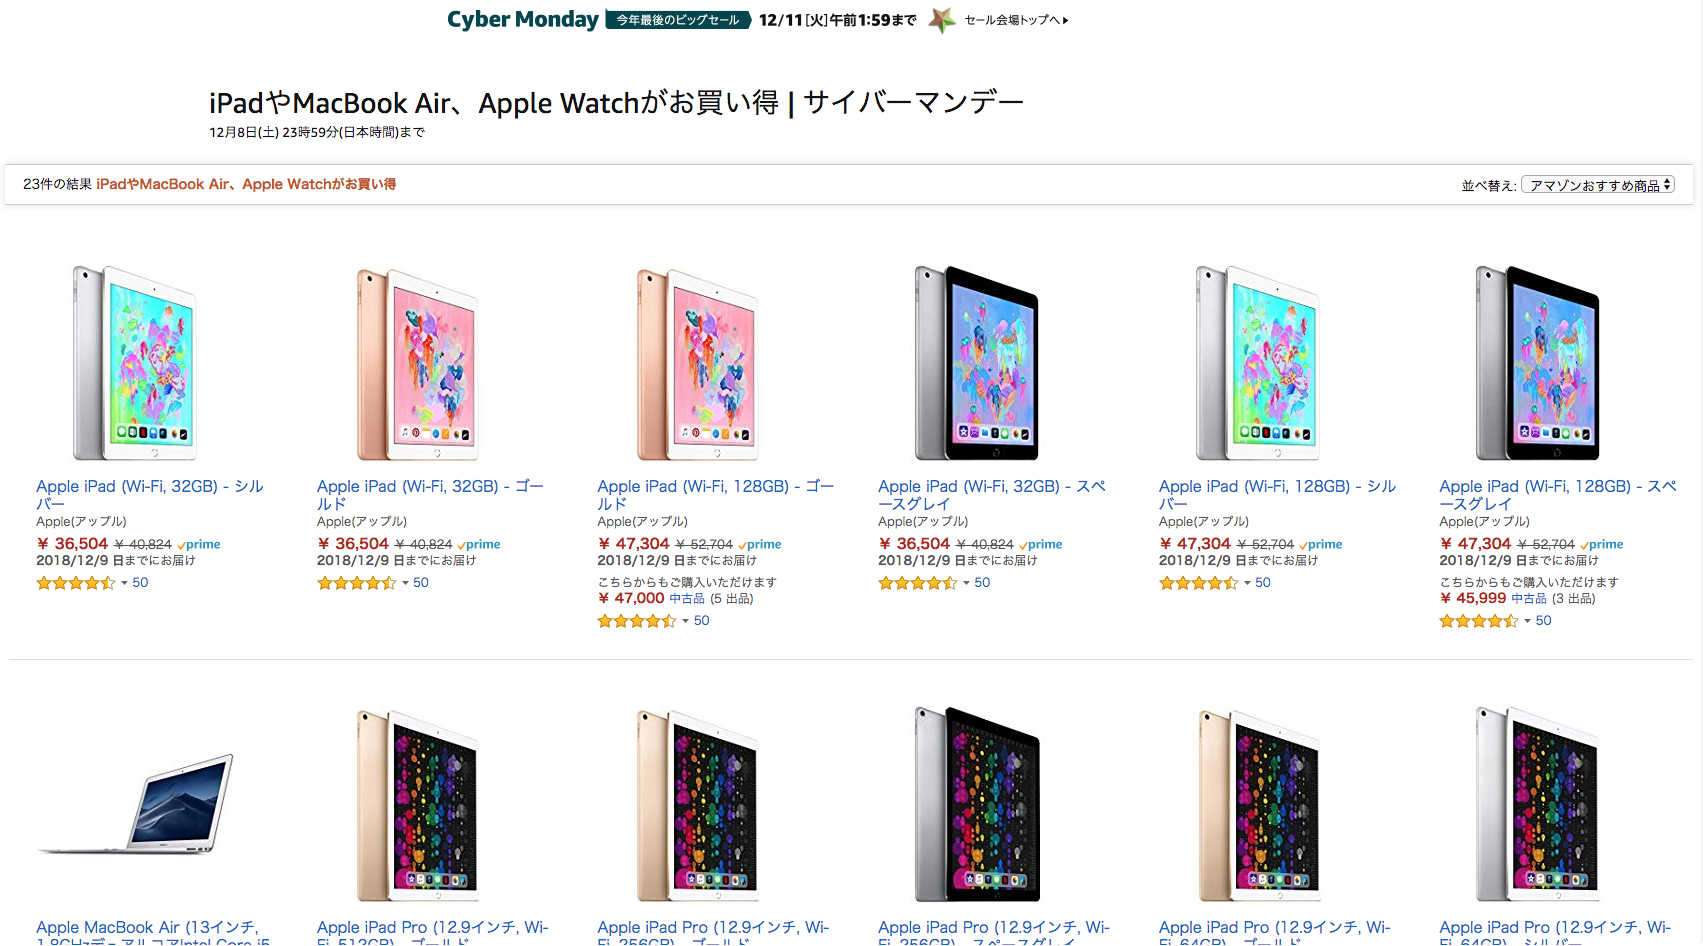 「Amazonサイバーマンデー」にiPad・MacBook Air・Apple Watchが登場